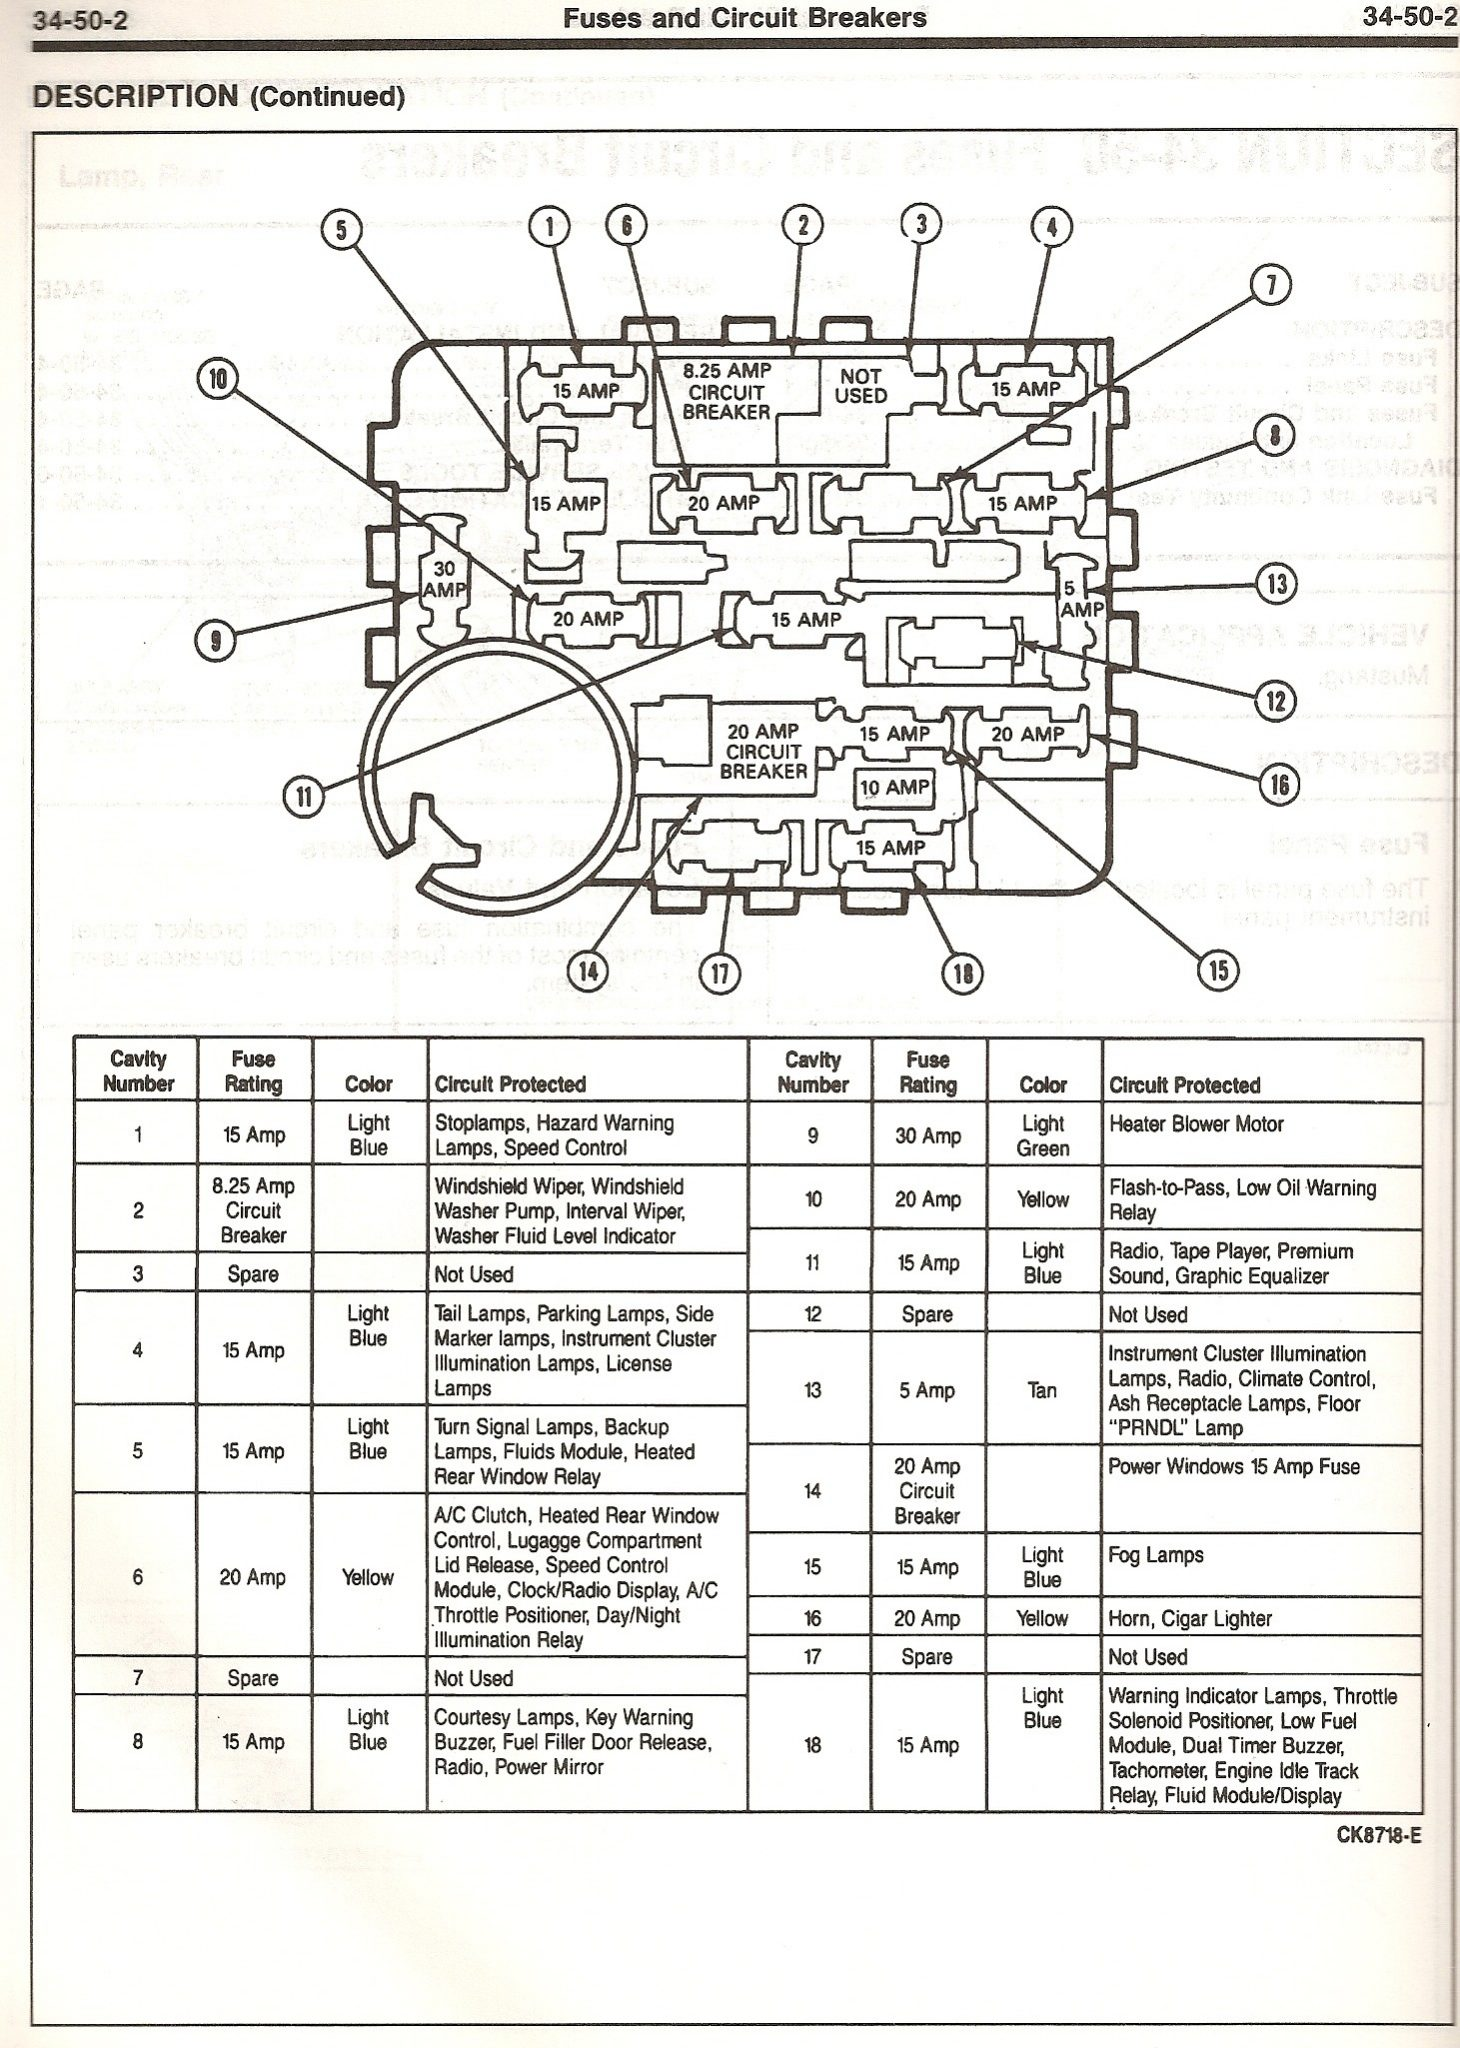 86 mustang gt fuse box diagram trusted wiring diagram rh dafpods co 1986  mustang fuse box diagram 86 mustang fuse panel diagram